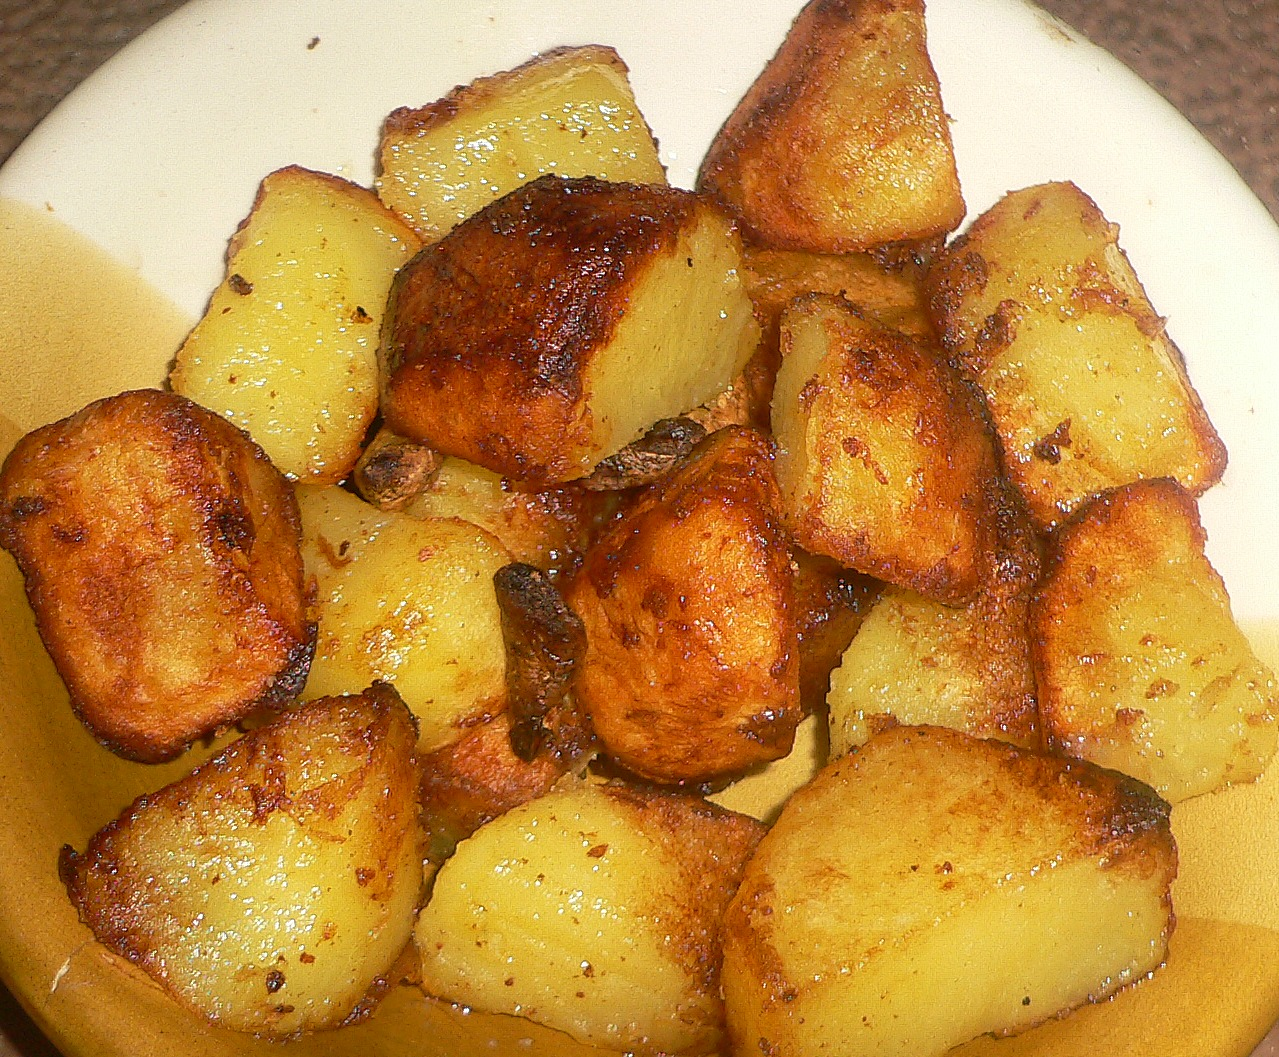 ... Course Side Dish Potatoes Roasted Rosemary Potatoes with Garlic